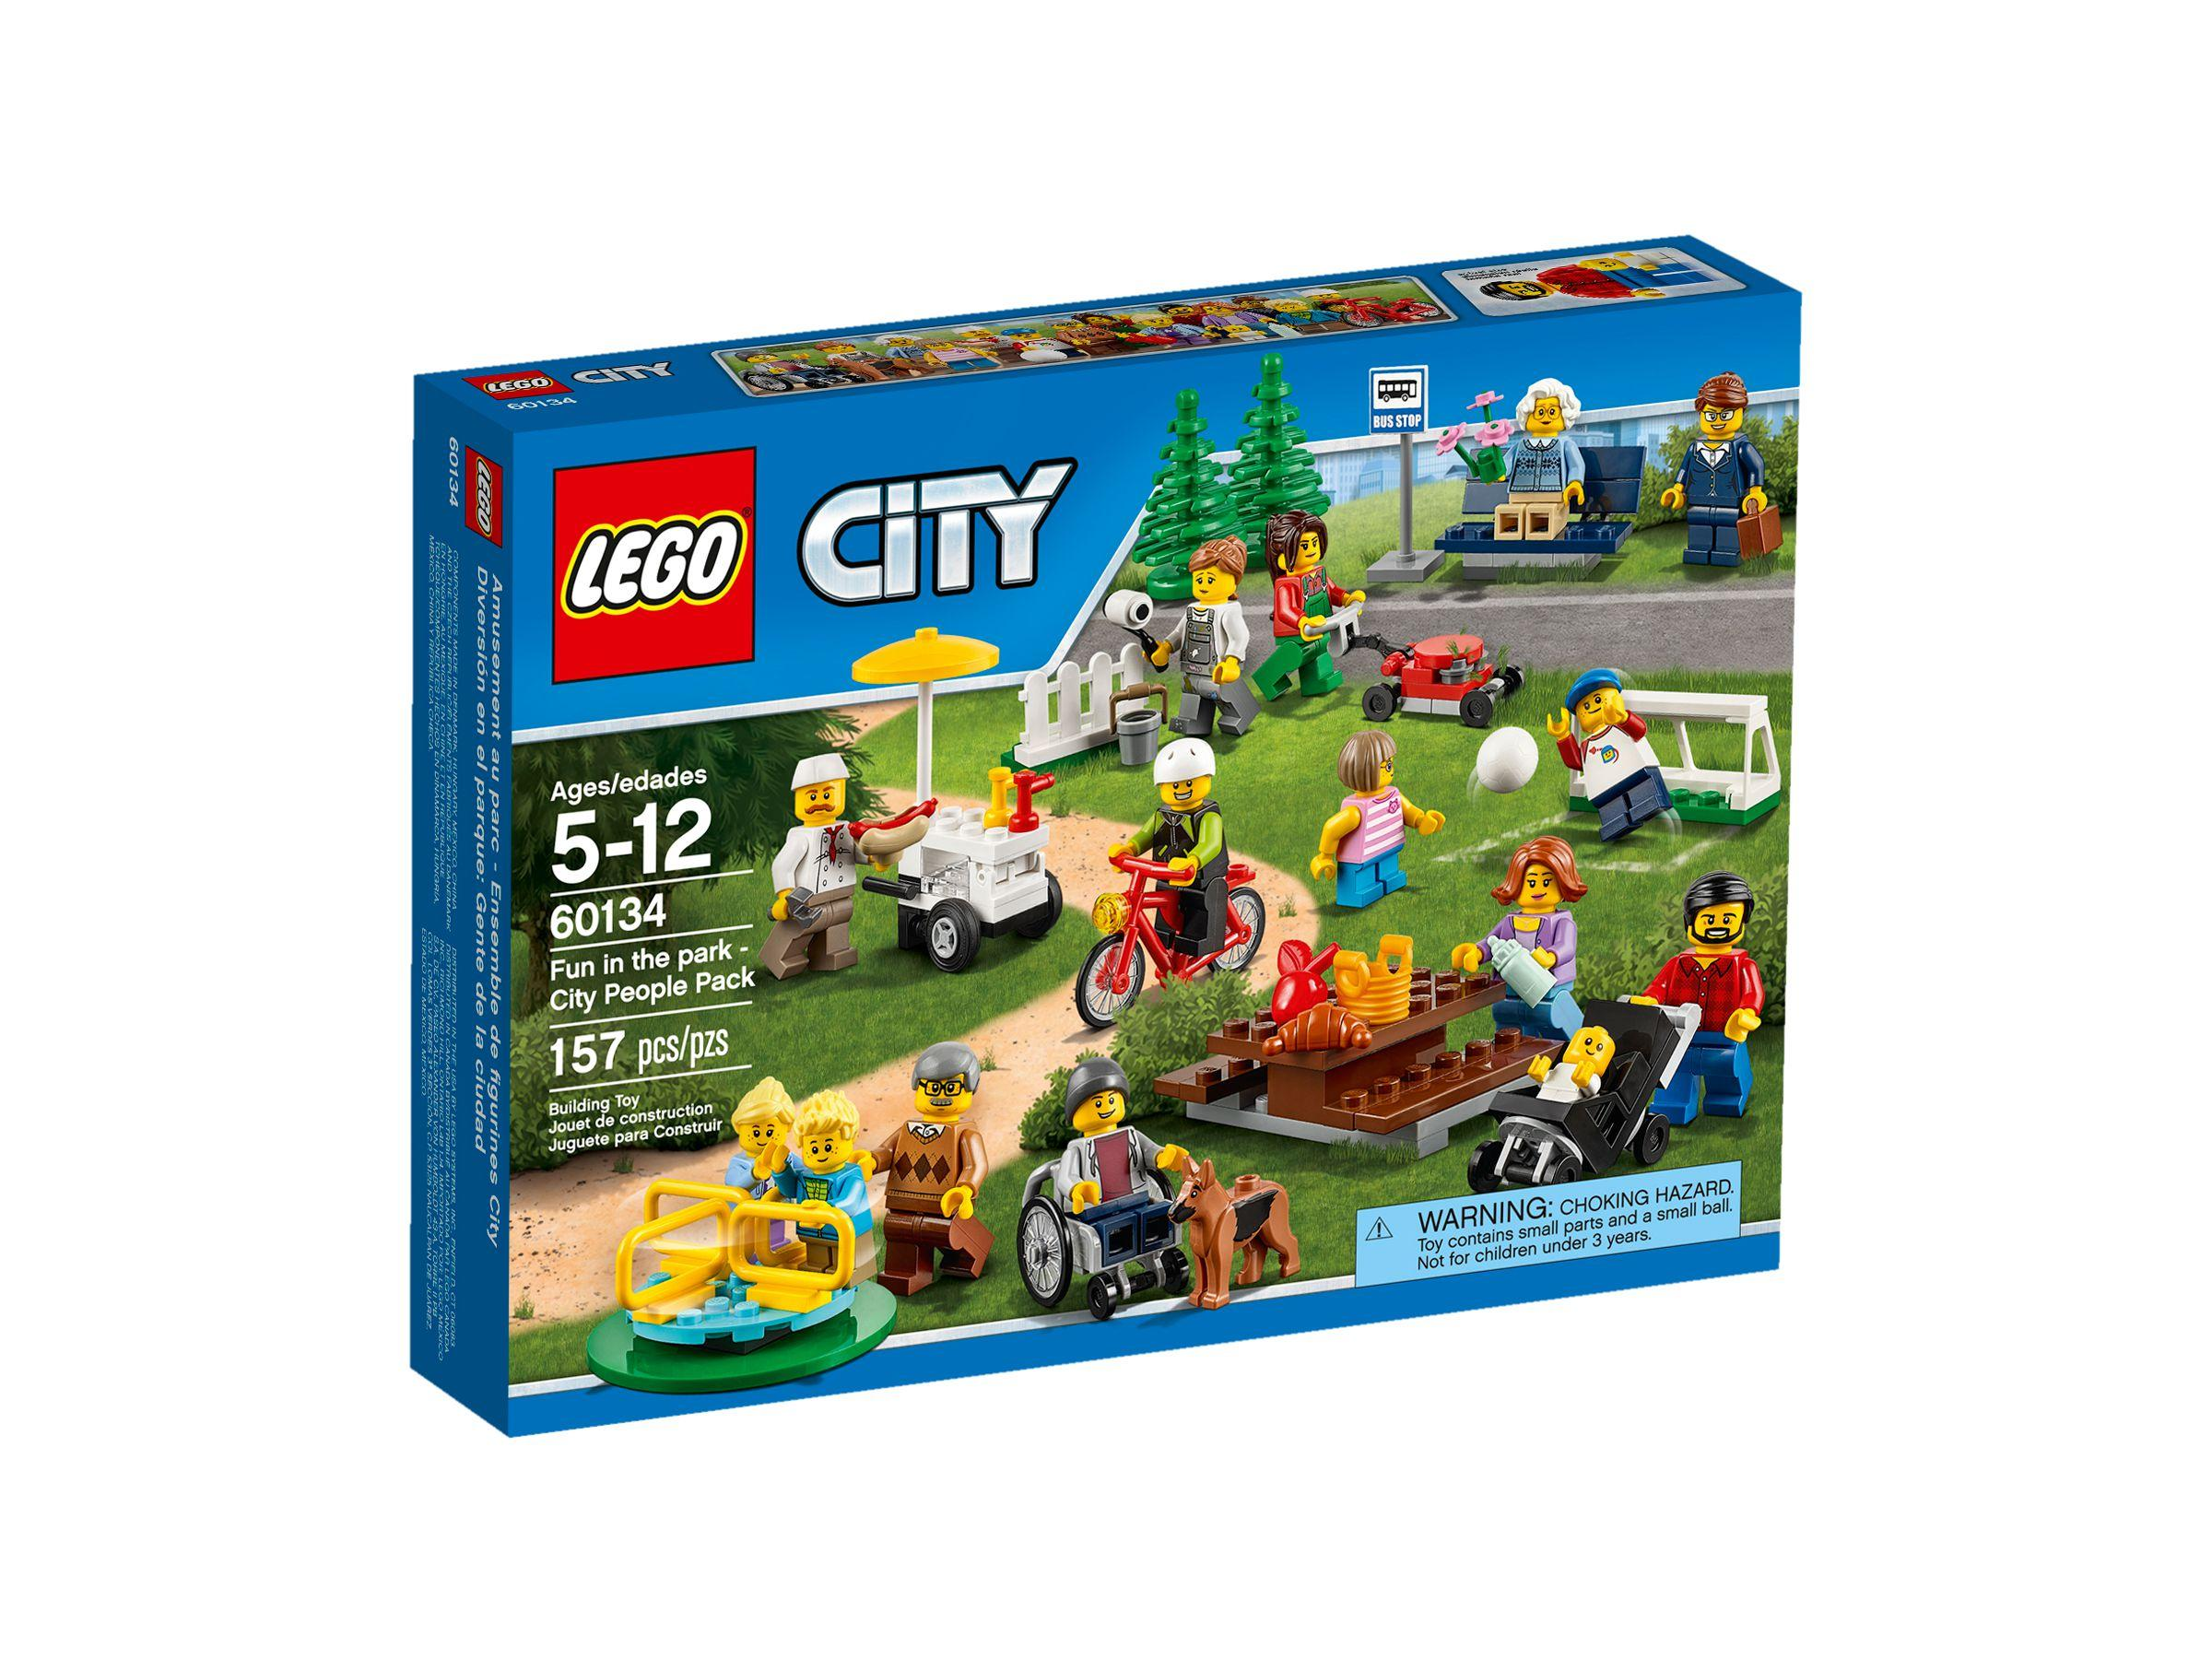 Lego City Fun in the park - City People Pack